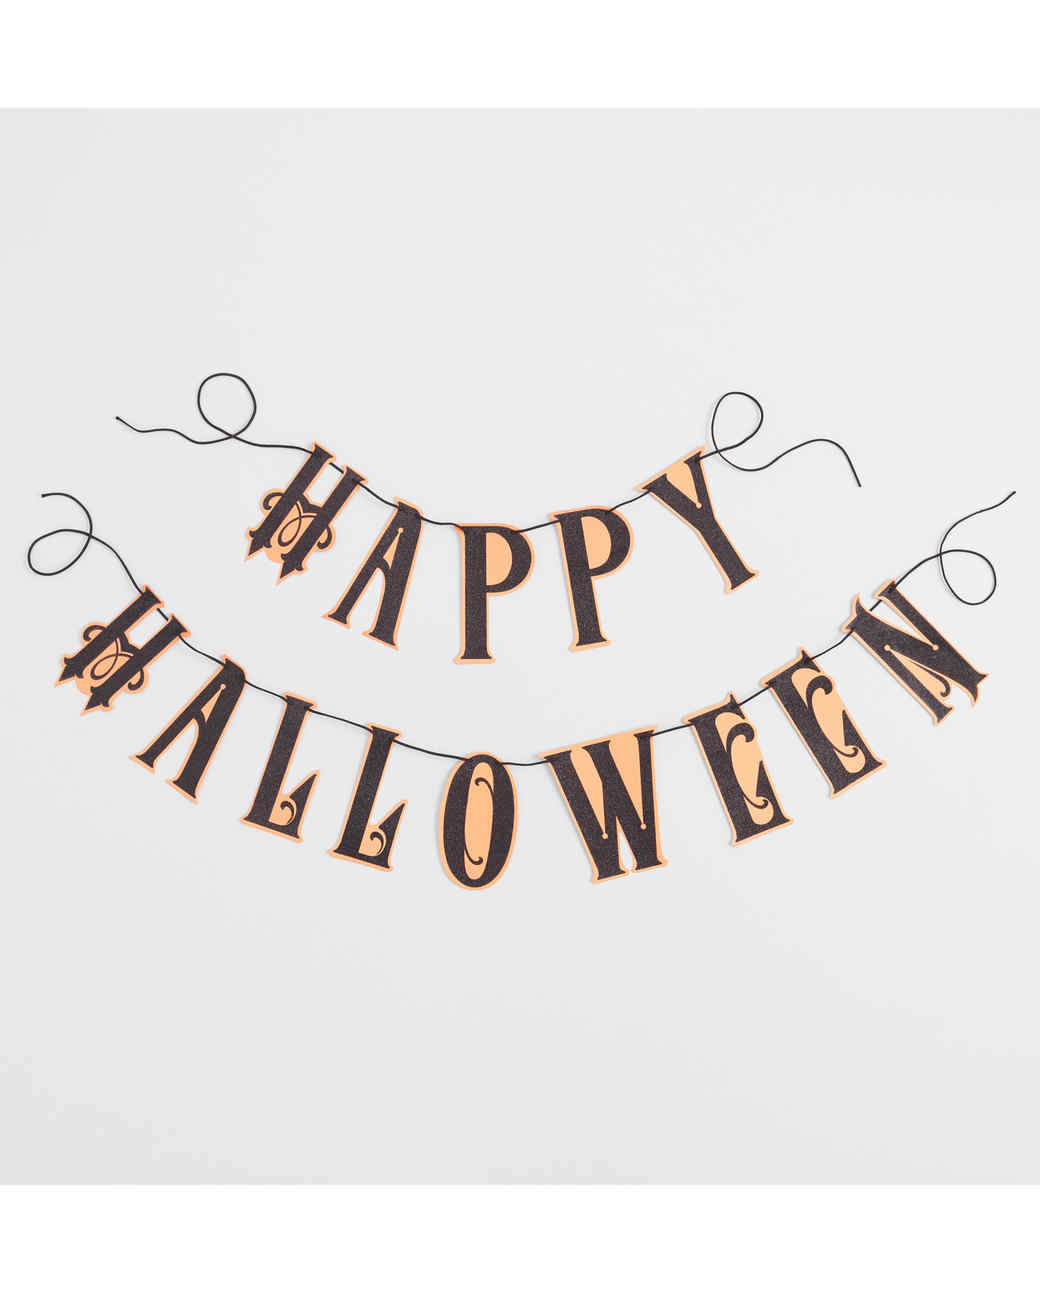 the best of halloween home decor 2018 | martha stewart